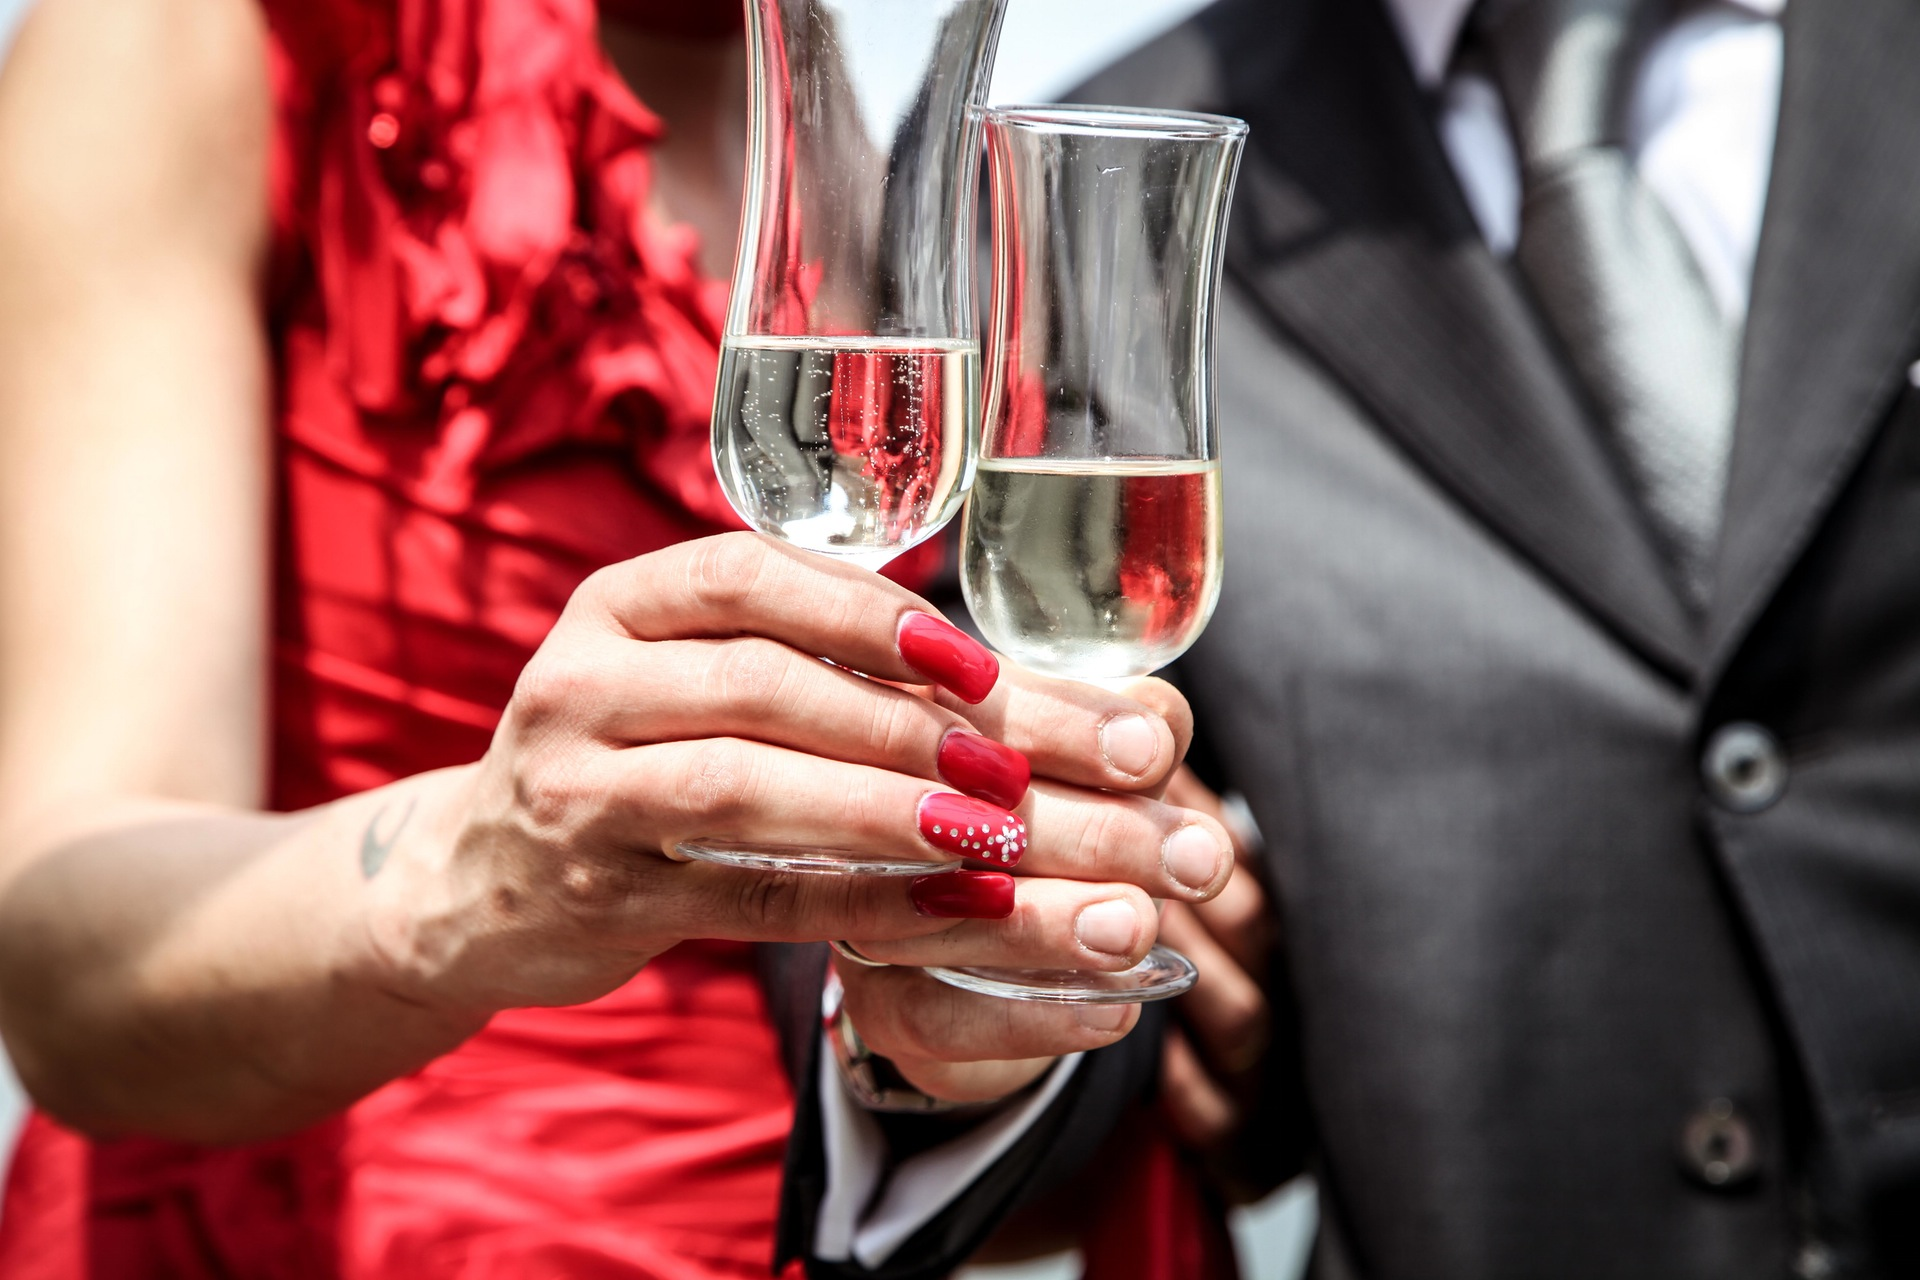 This recipe for a Red Carpet Royal is a traditional champagne cocktail that's dressed for the biggest night in Hollywood. (Pexels photo)